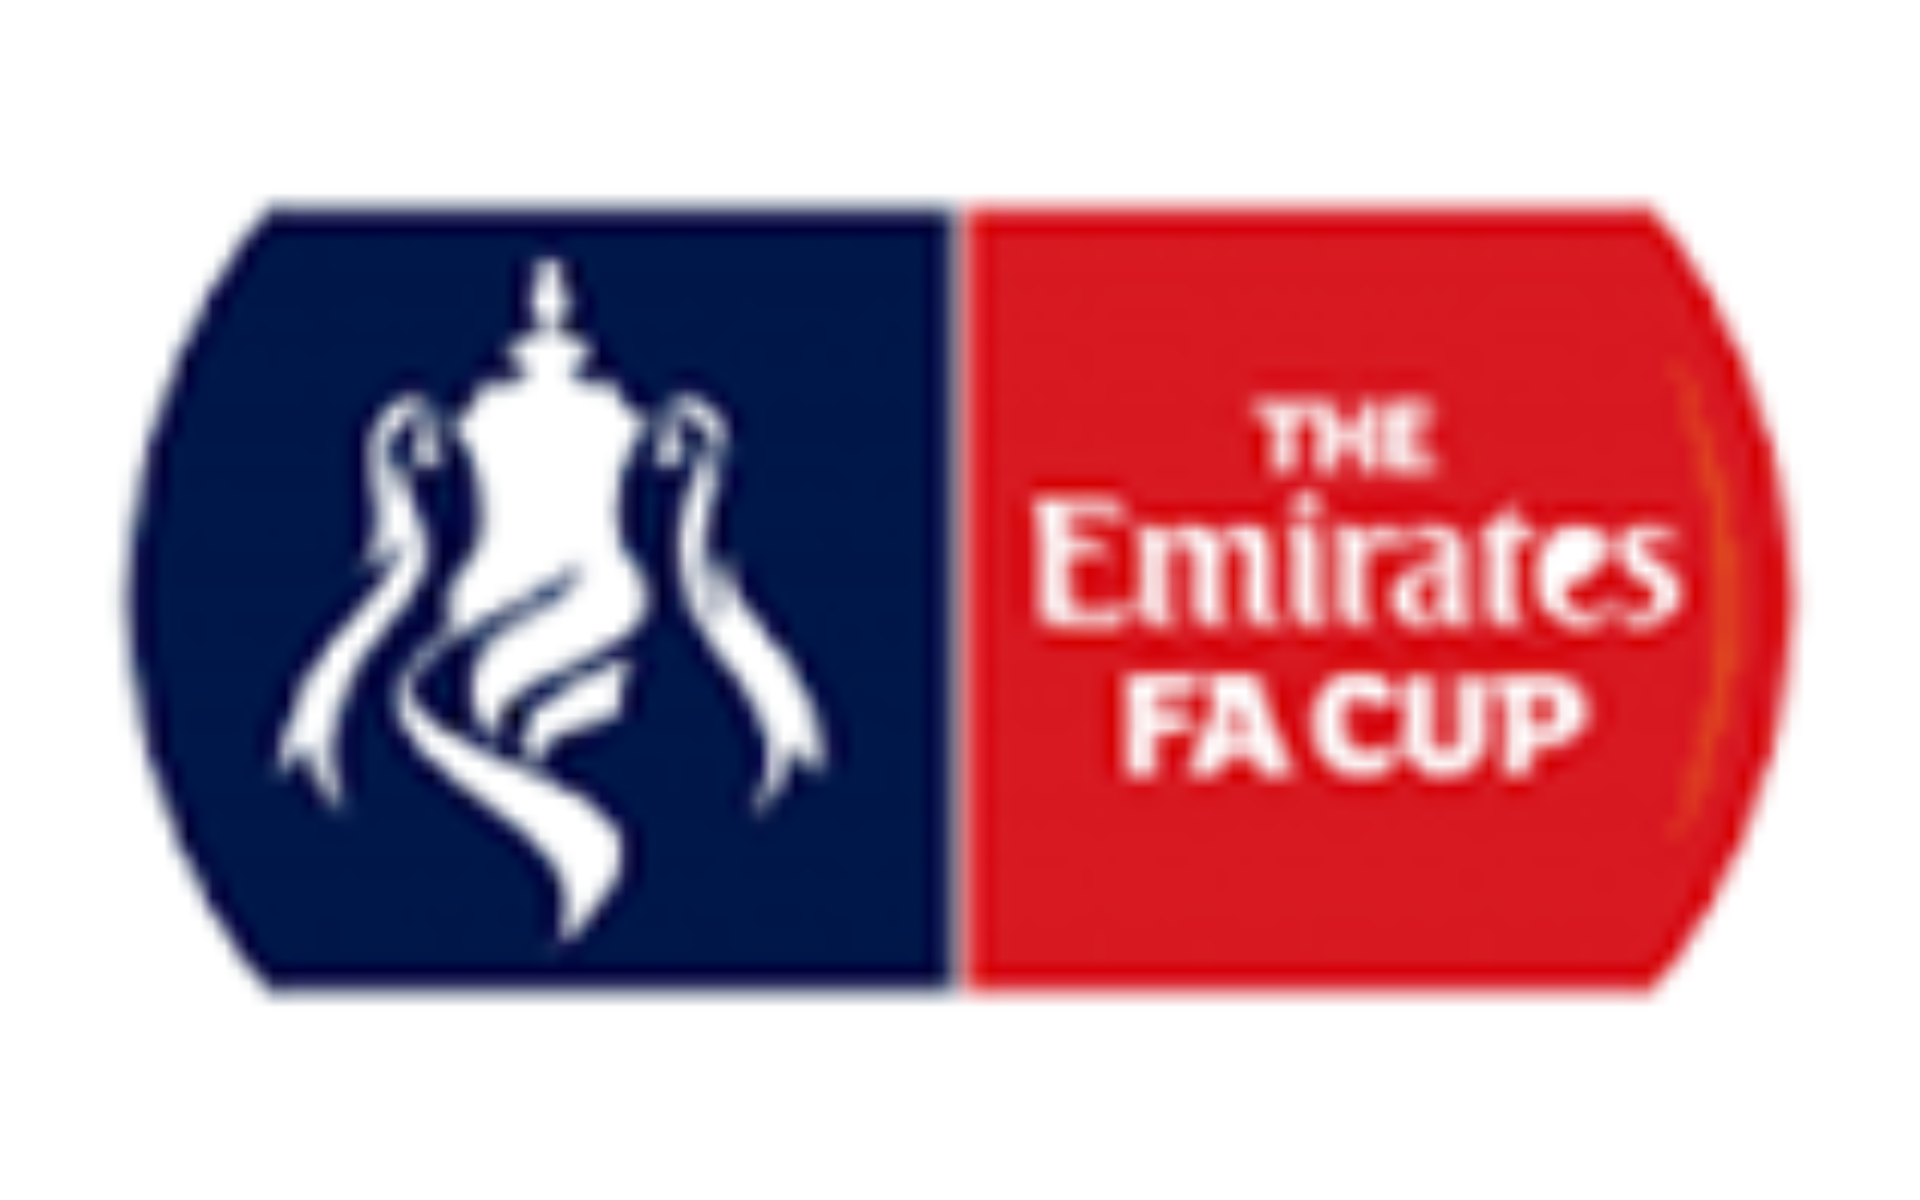 Competitive football returns to the Arena and it's the FA Cup Featured Image